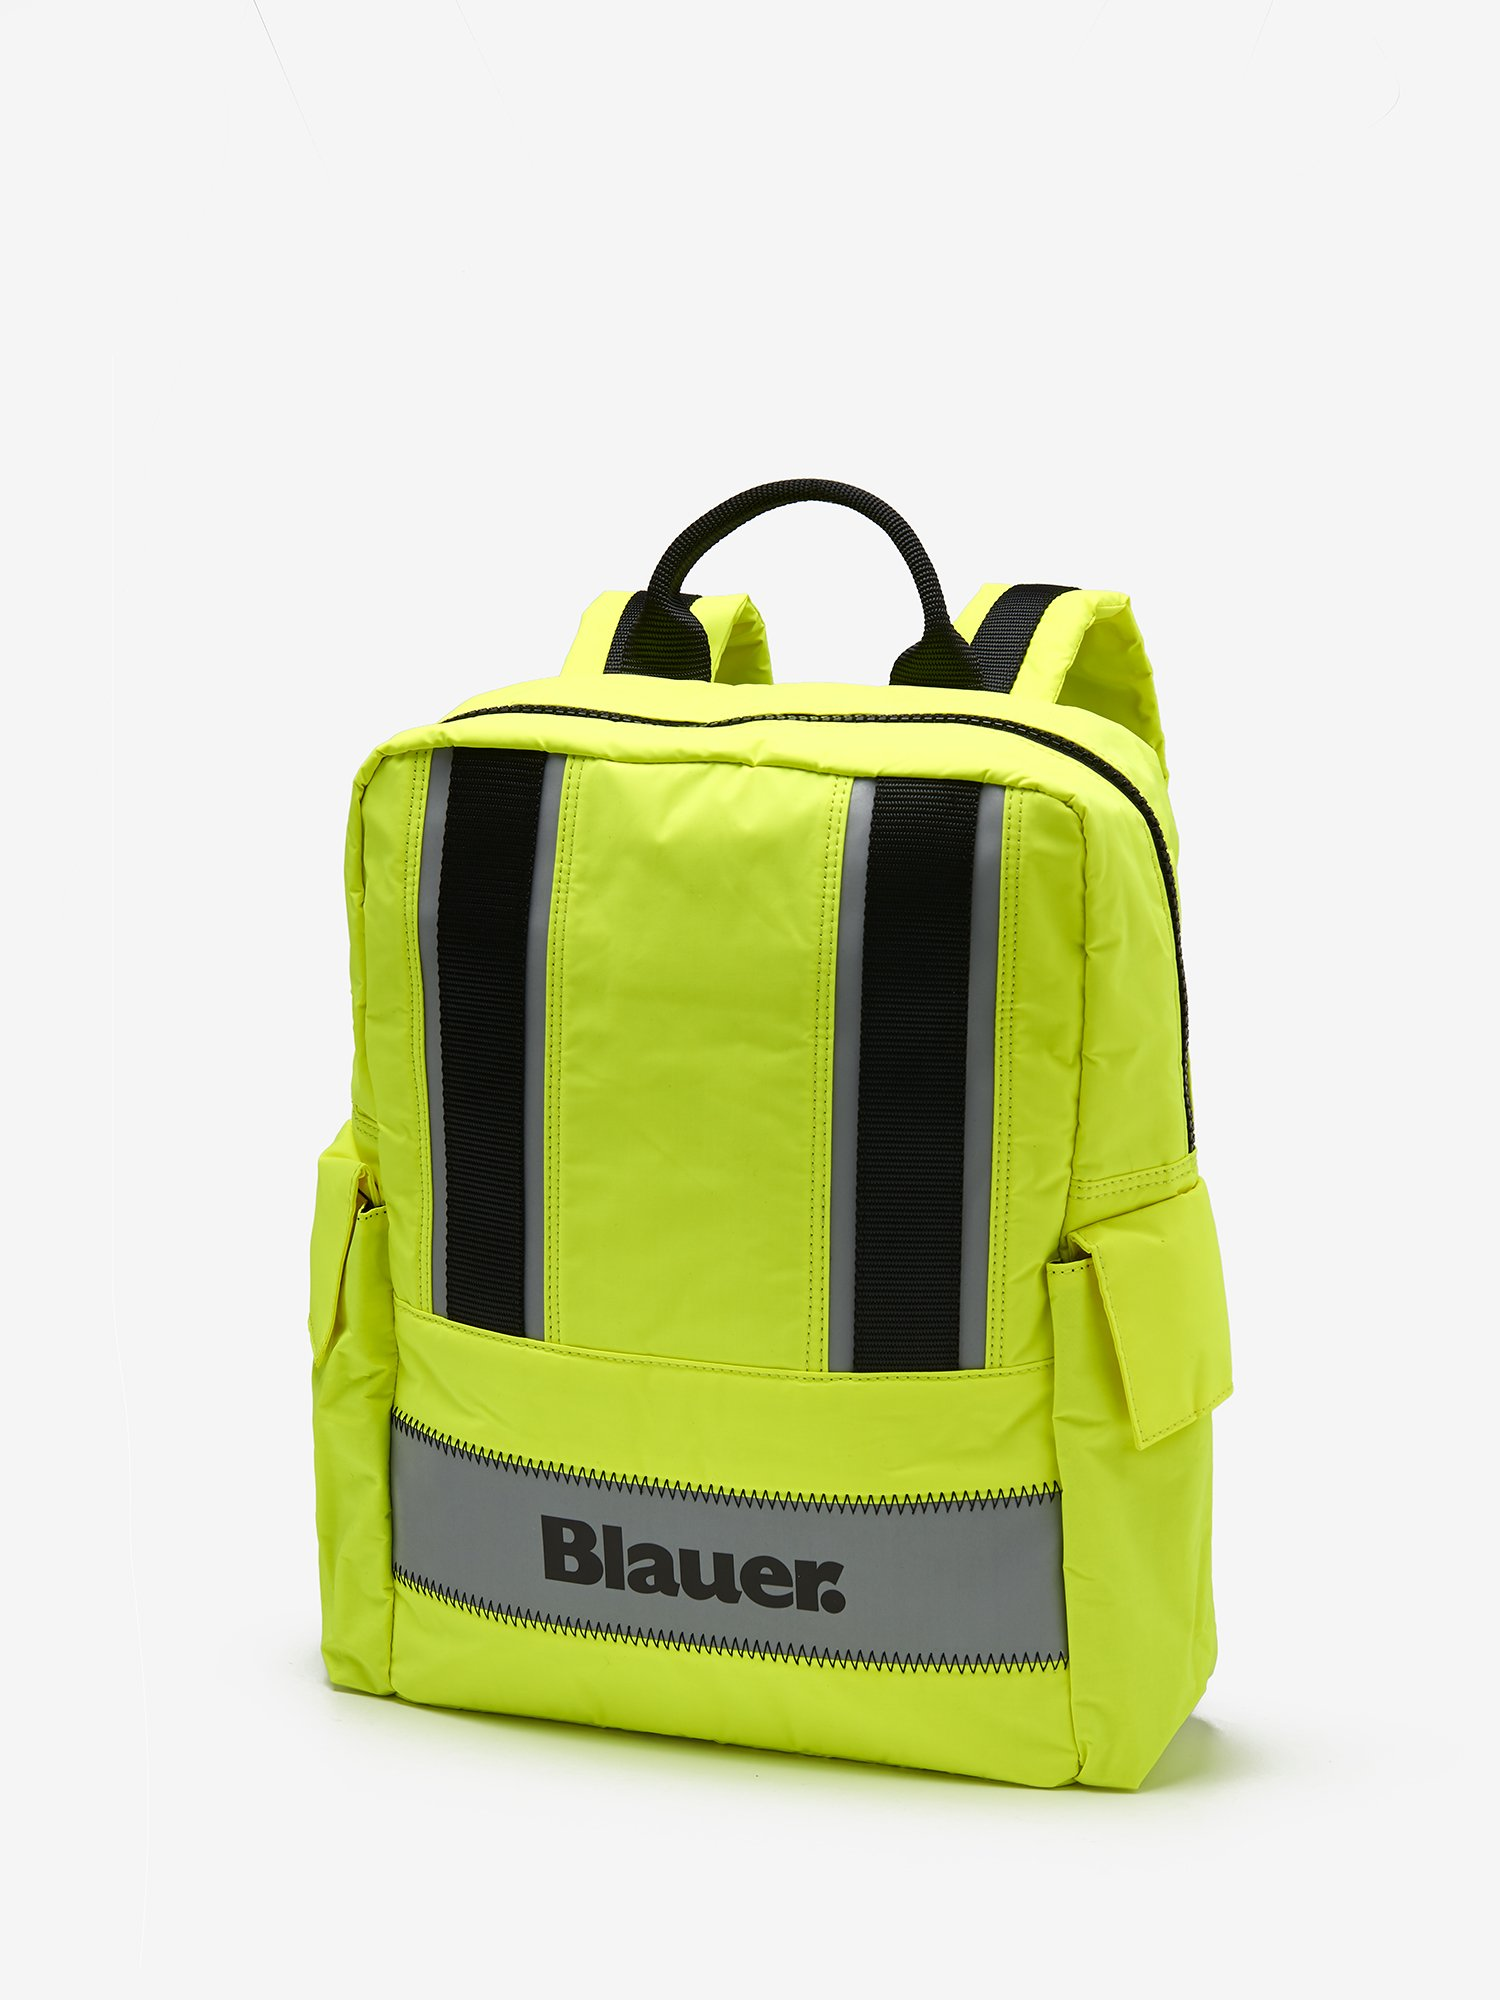 HIGH VISIBILITY ACID BACKPACK - Blauer